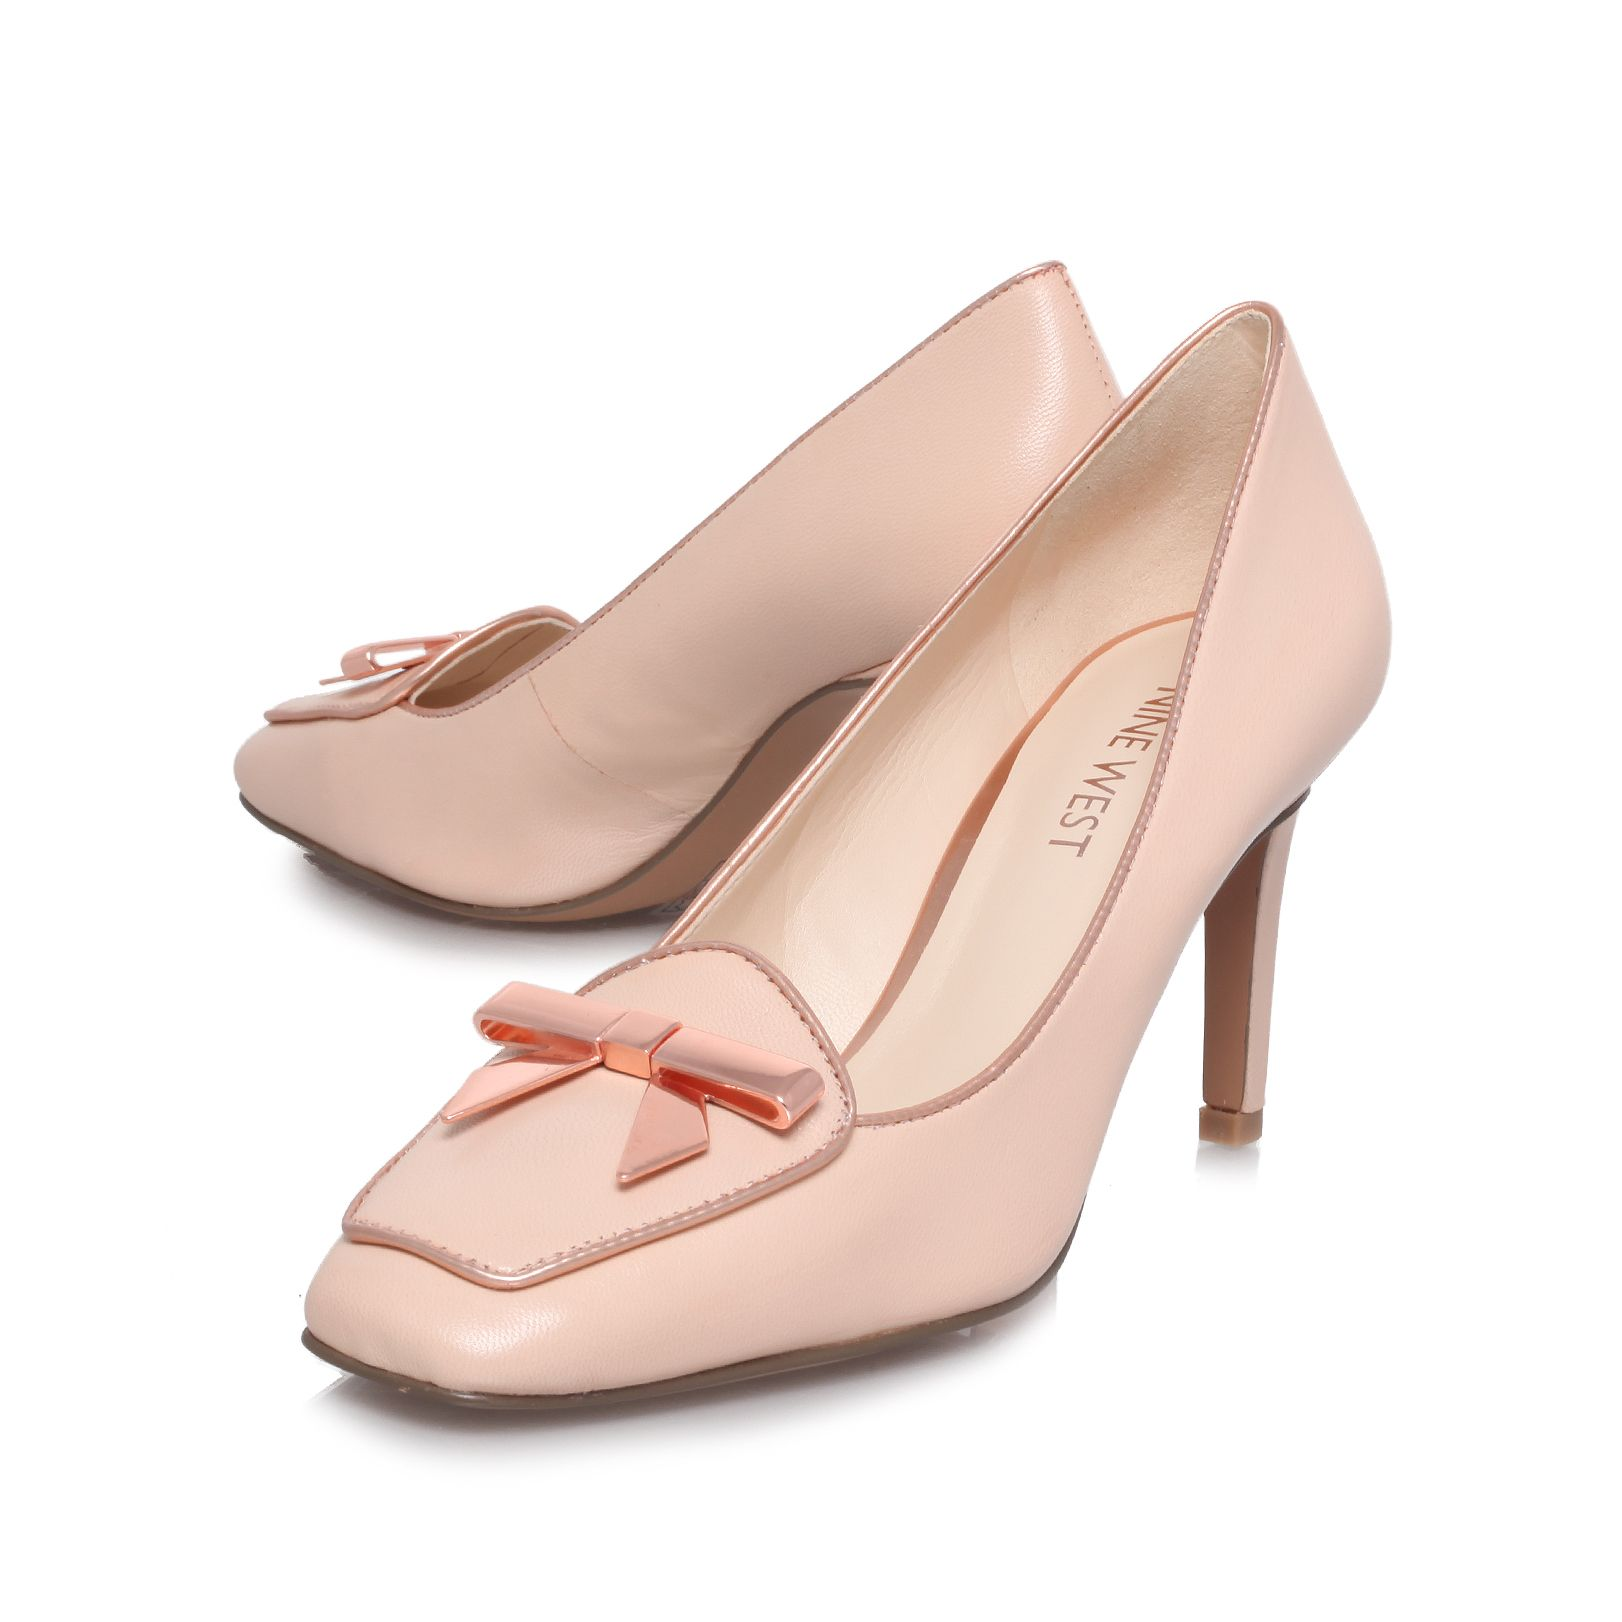 Darcy high heel court shoes